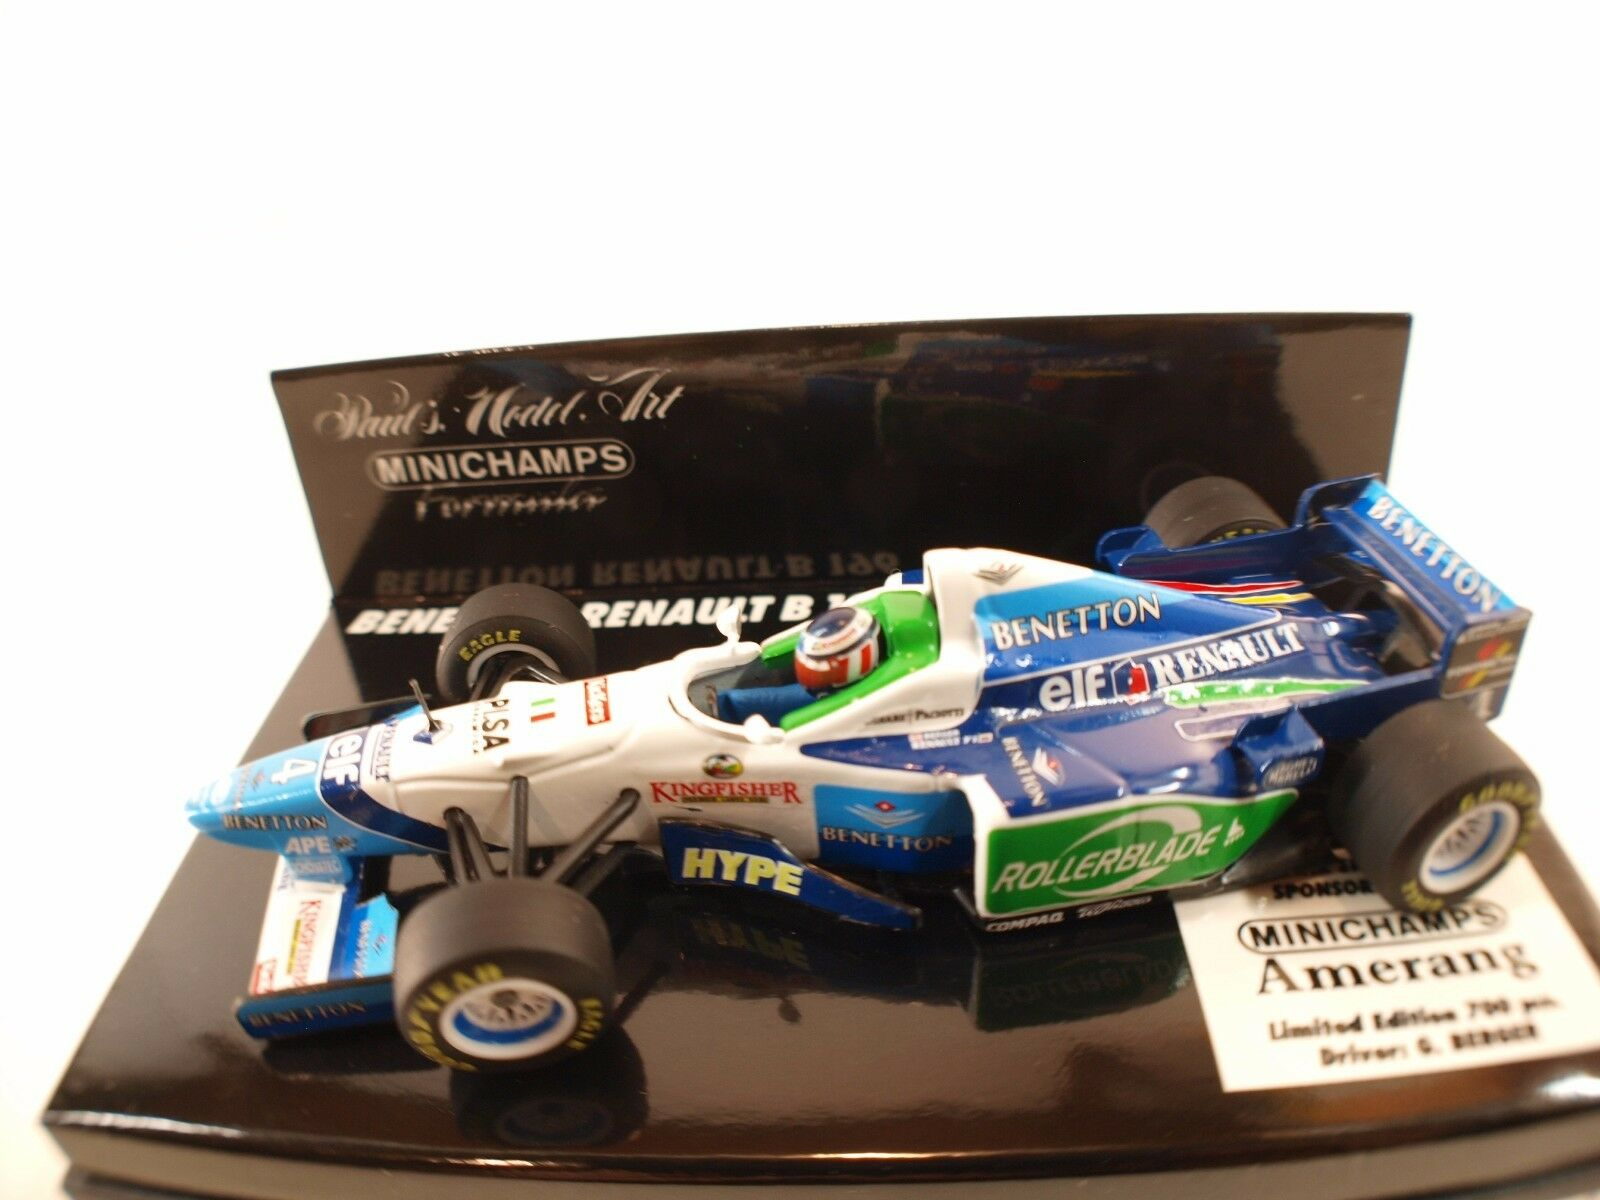 Minichamps benetton renault b196  43 berger amerang new in box boxed